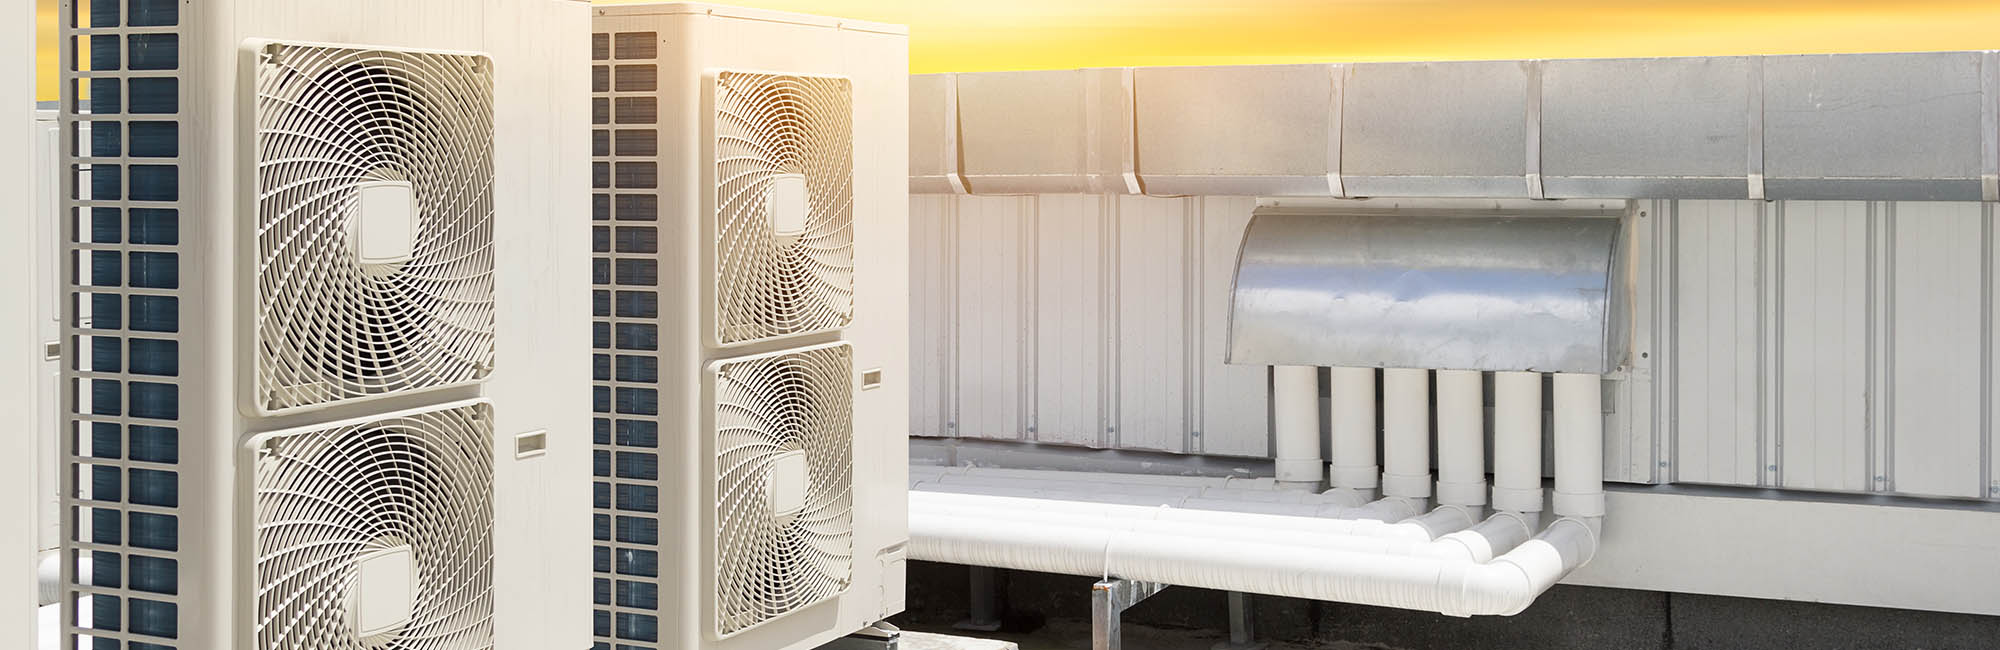 Commercial and Domestic Air Conditioning Leicester